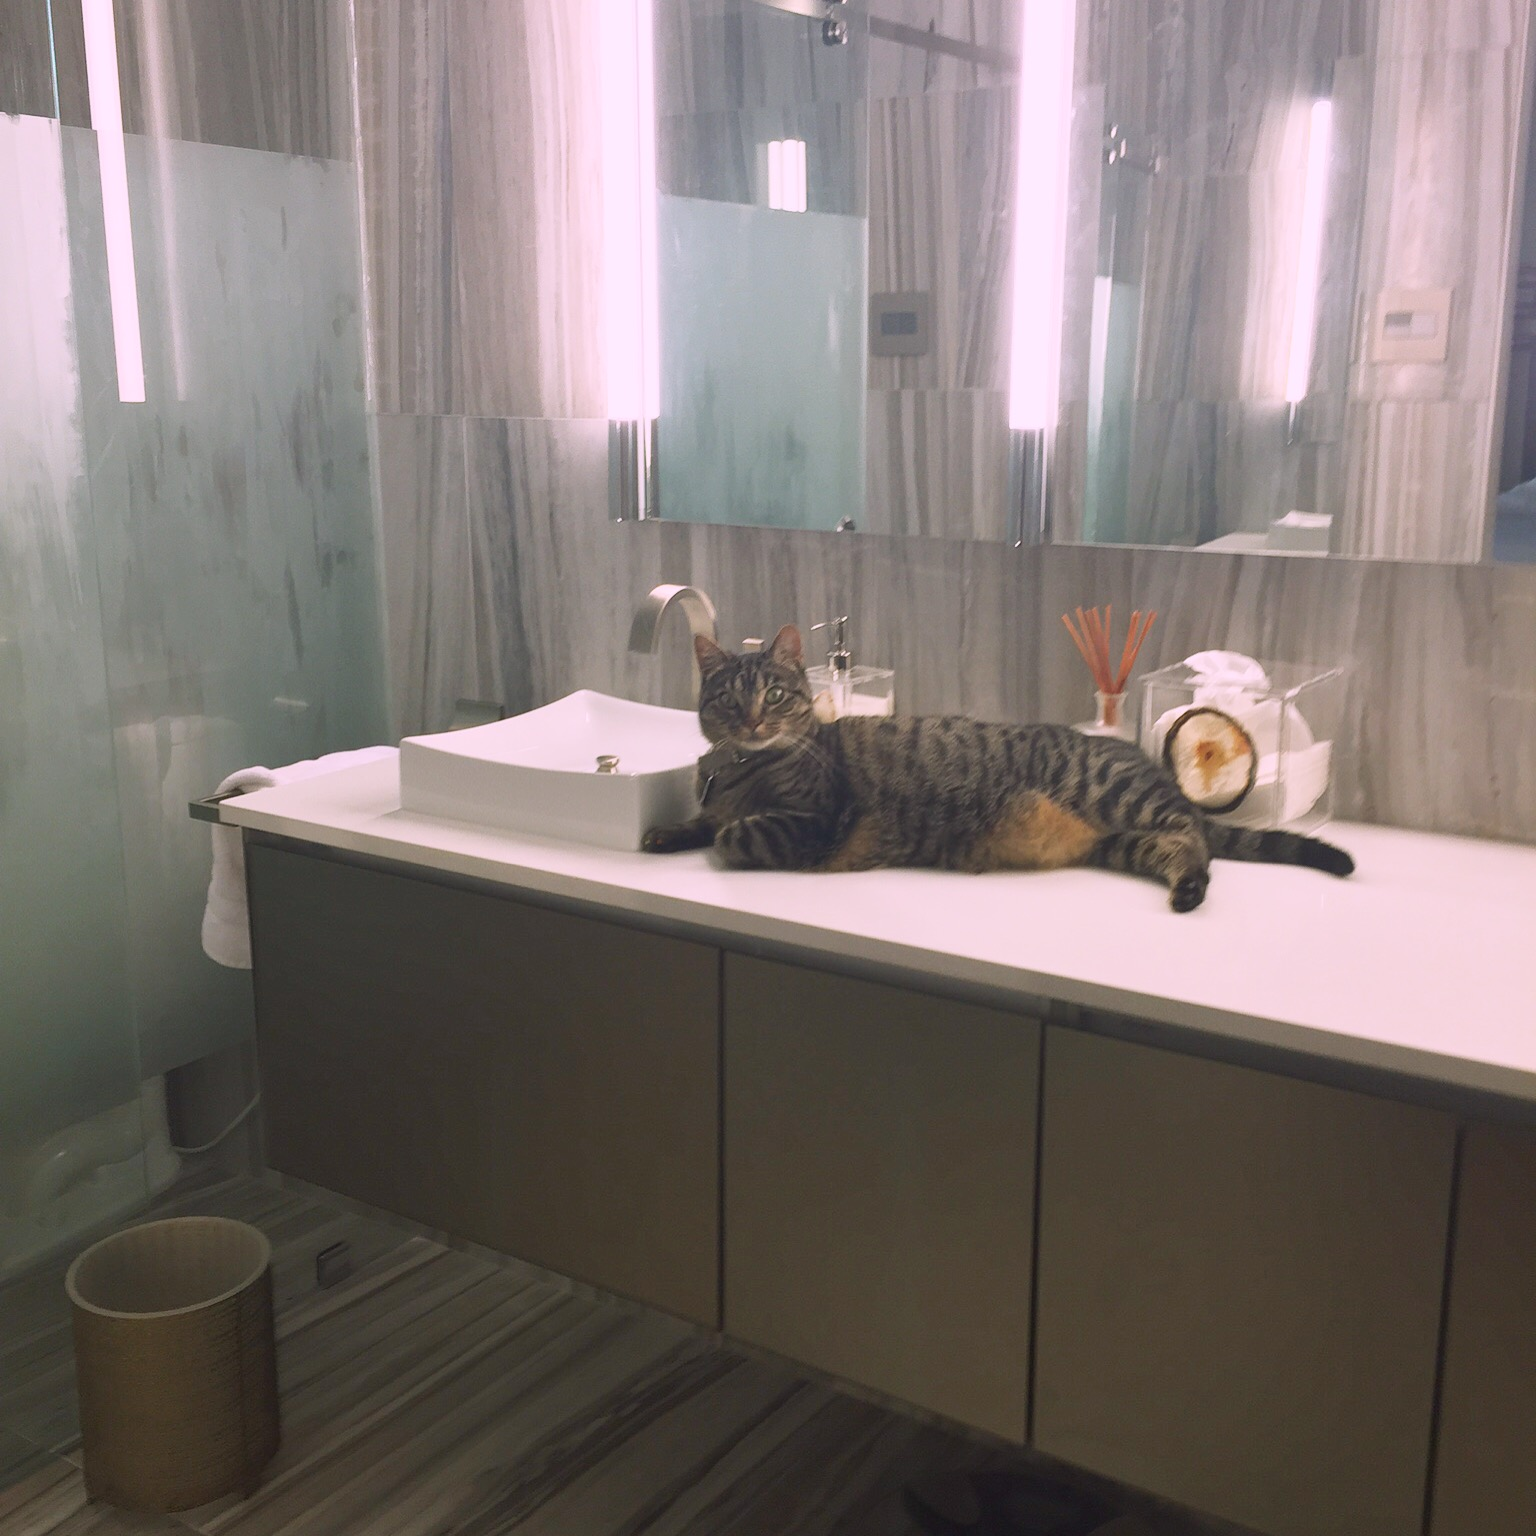 http://jillornelas.com/blog/2016/7/8/relax-5-tips-for-how-to-love-your-pets-and-your-home.jpg